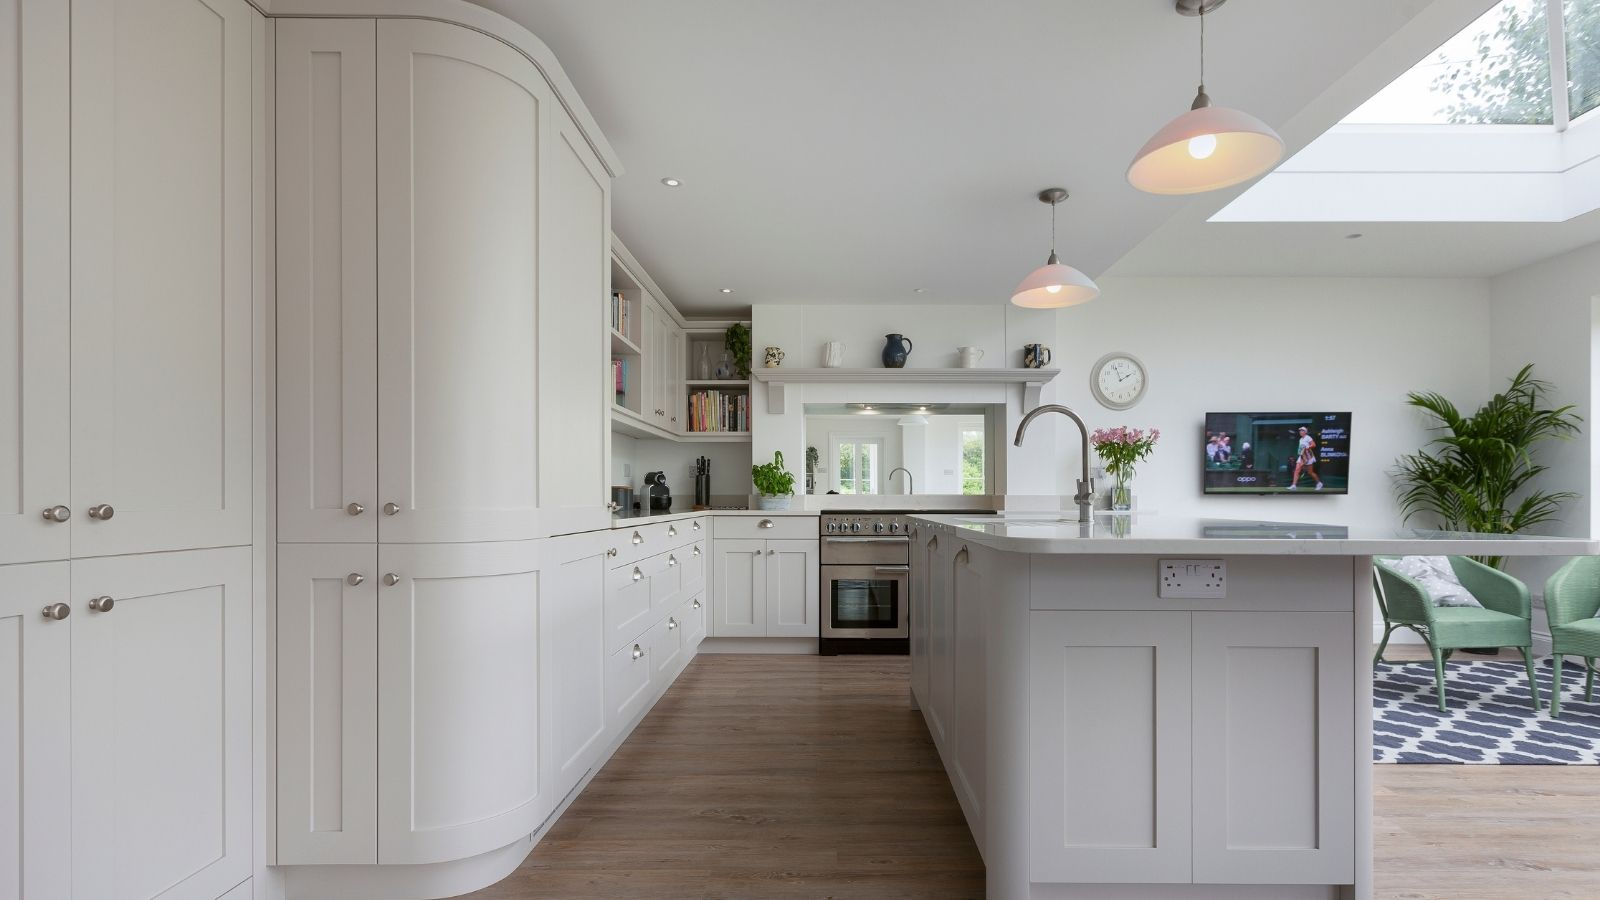 Curved cabinets in an open plan kitchen from Kestrel Kitchens